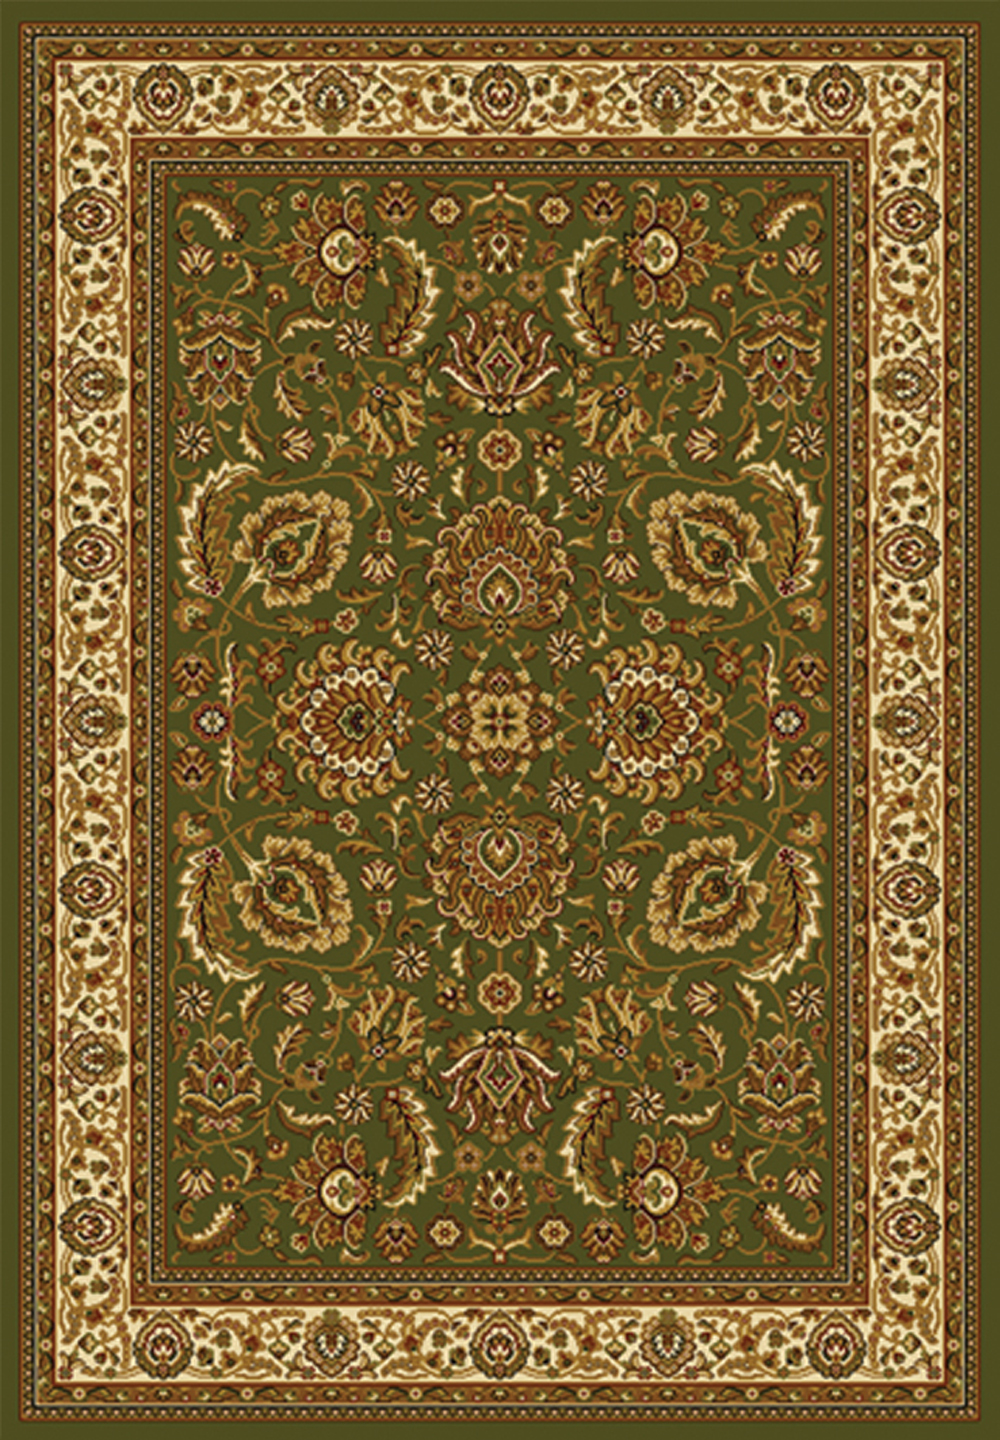 Green Traditional Area Rug 8x10 Bordered Floral Carpet